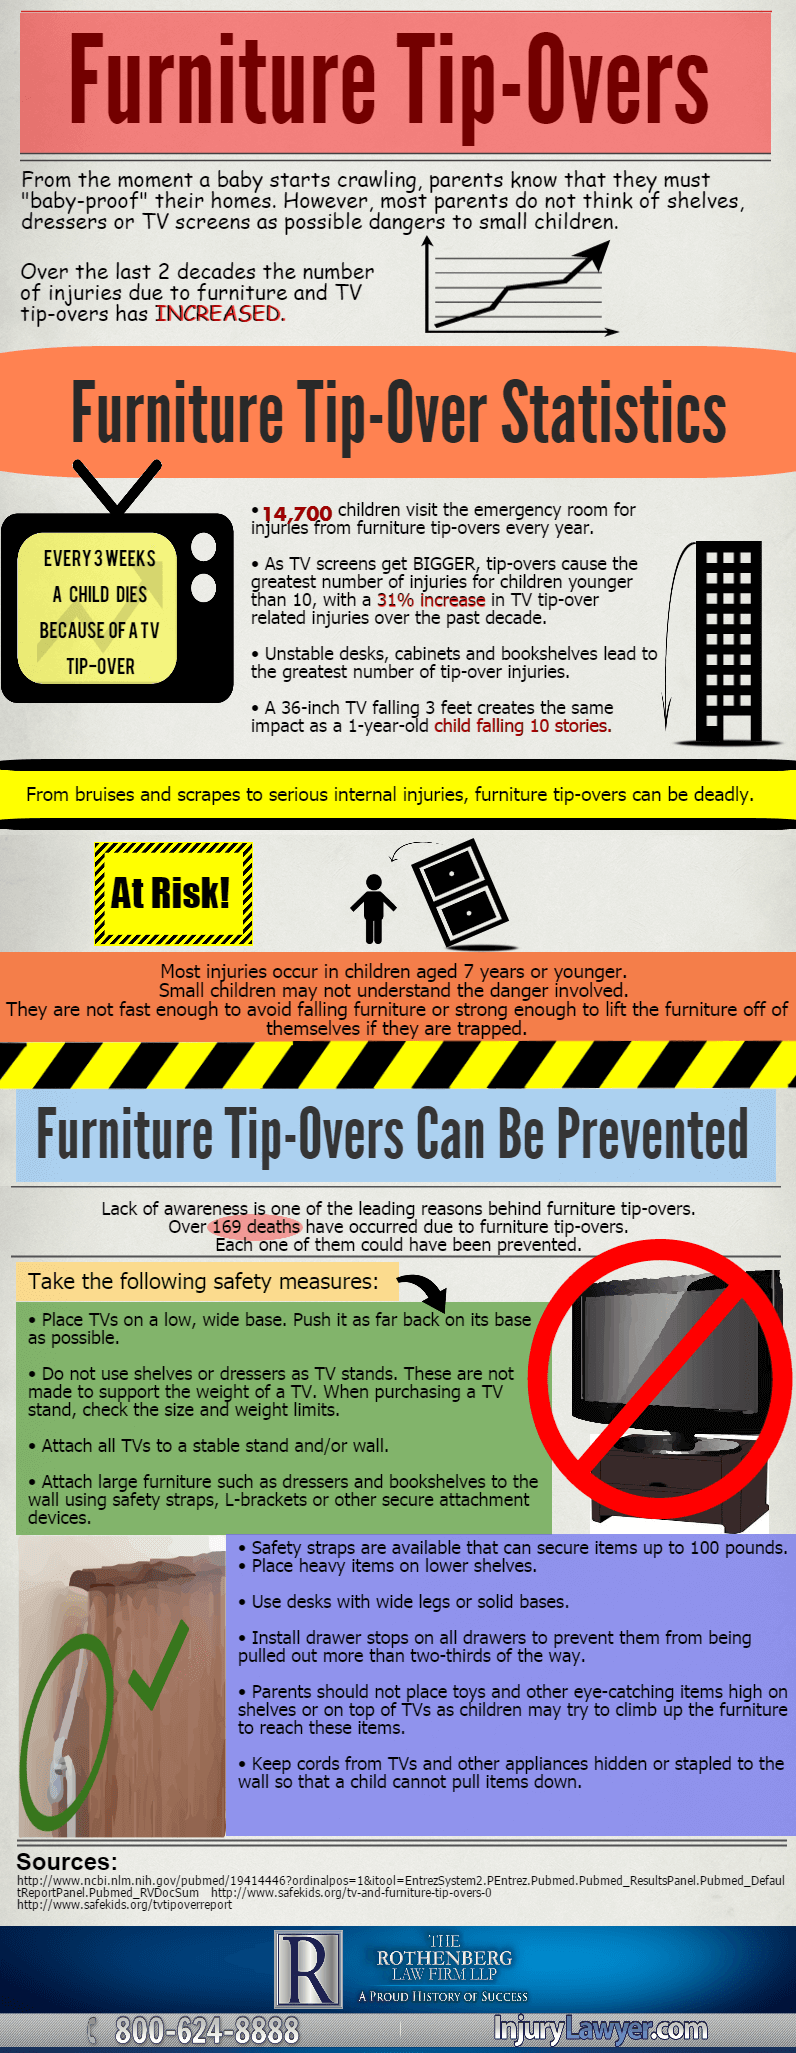 Furniture Tip-Over Accidents